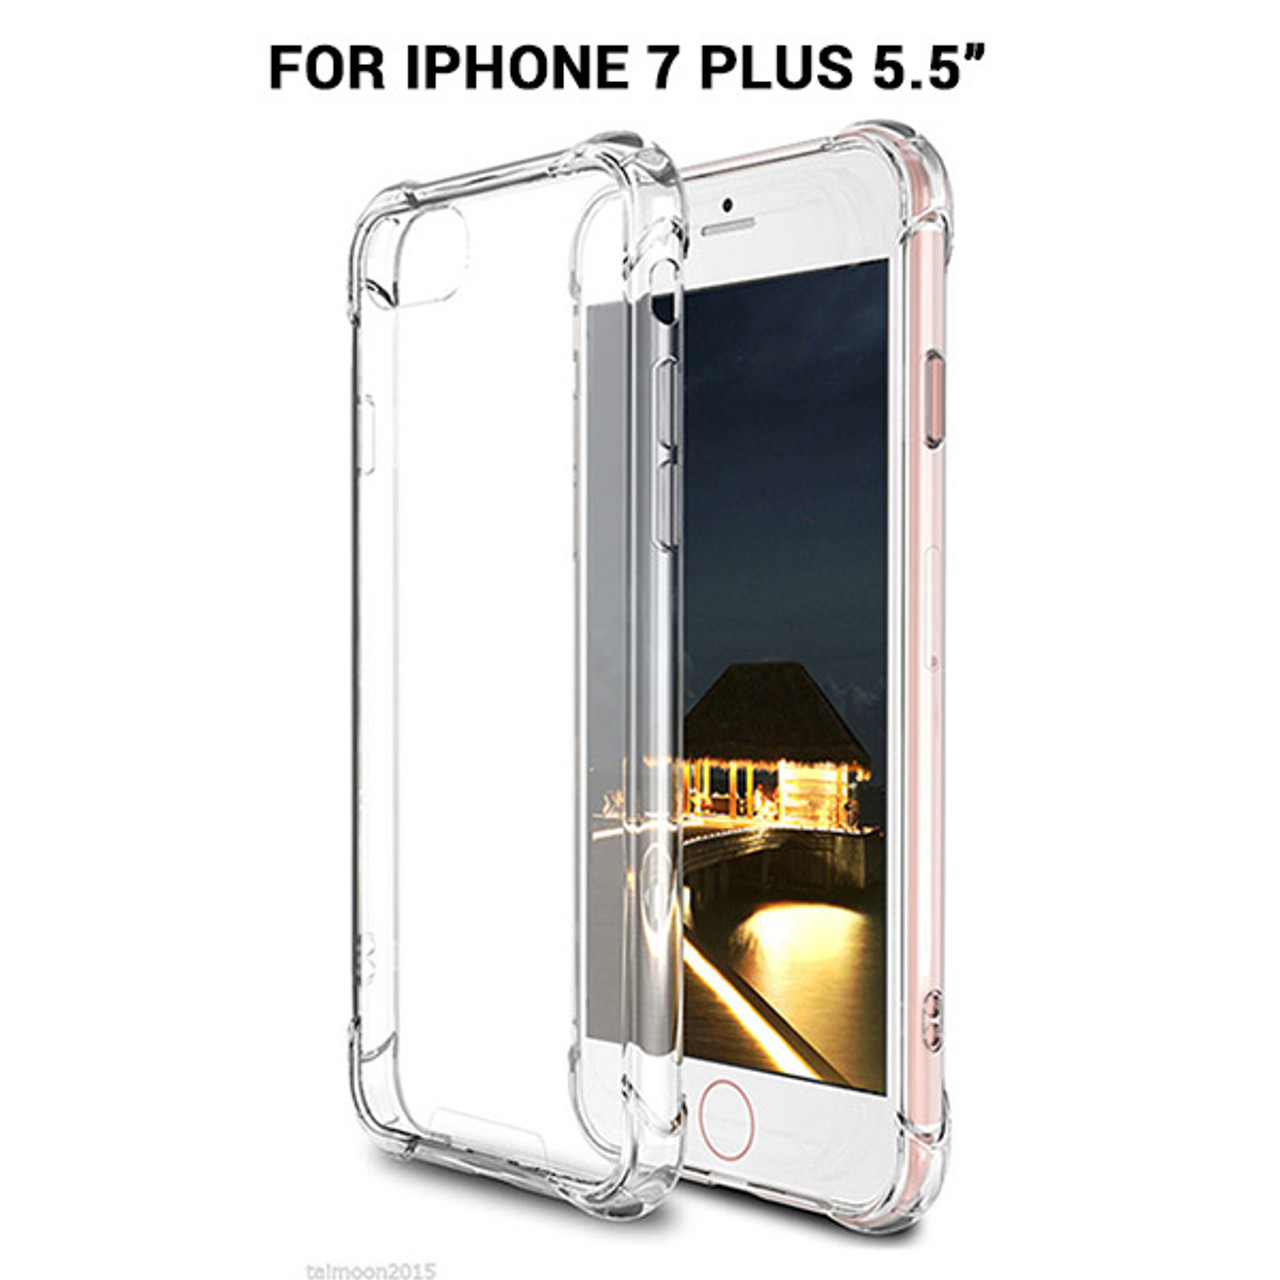 Product image for iPhone 7 PLUS  Shockproof Slim Soft Bumper Hard Back Case Cover Clear   CX Computer Superstore